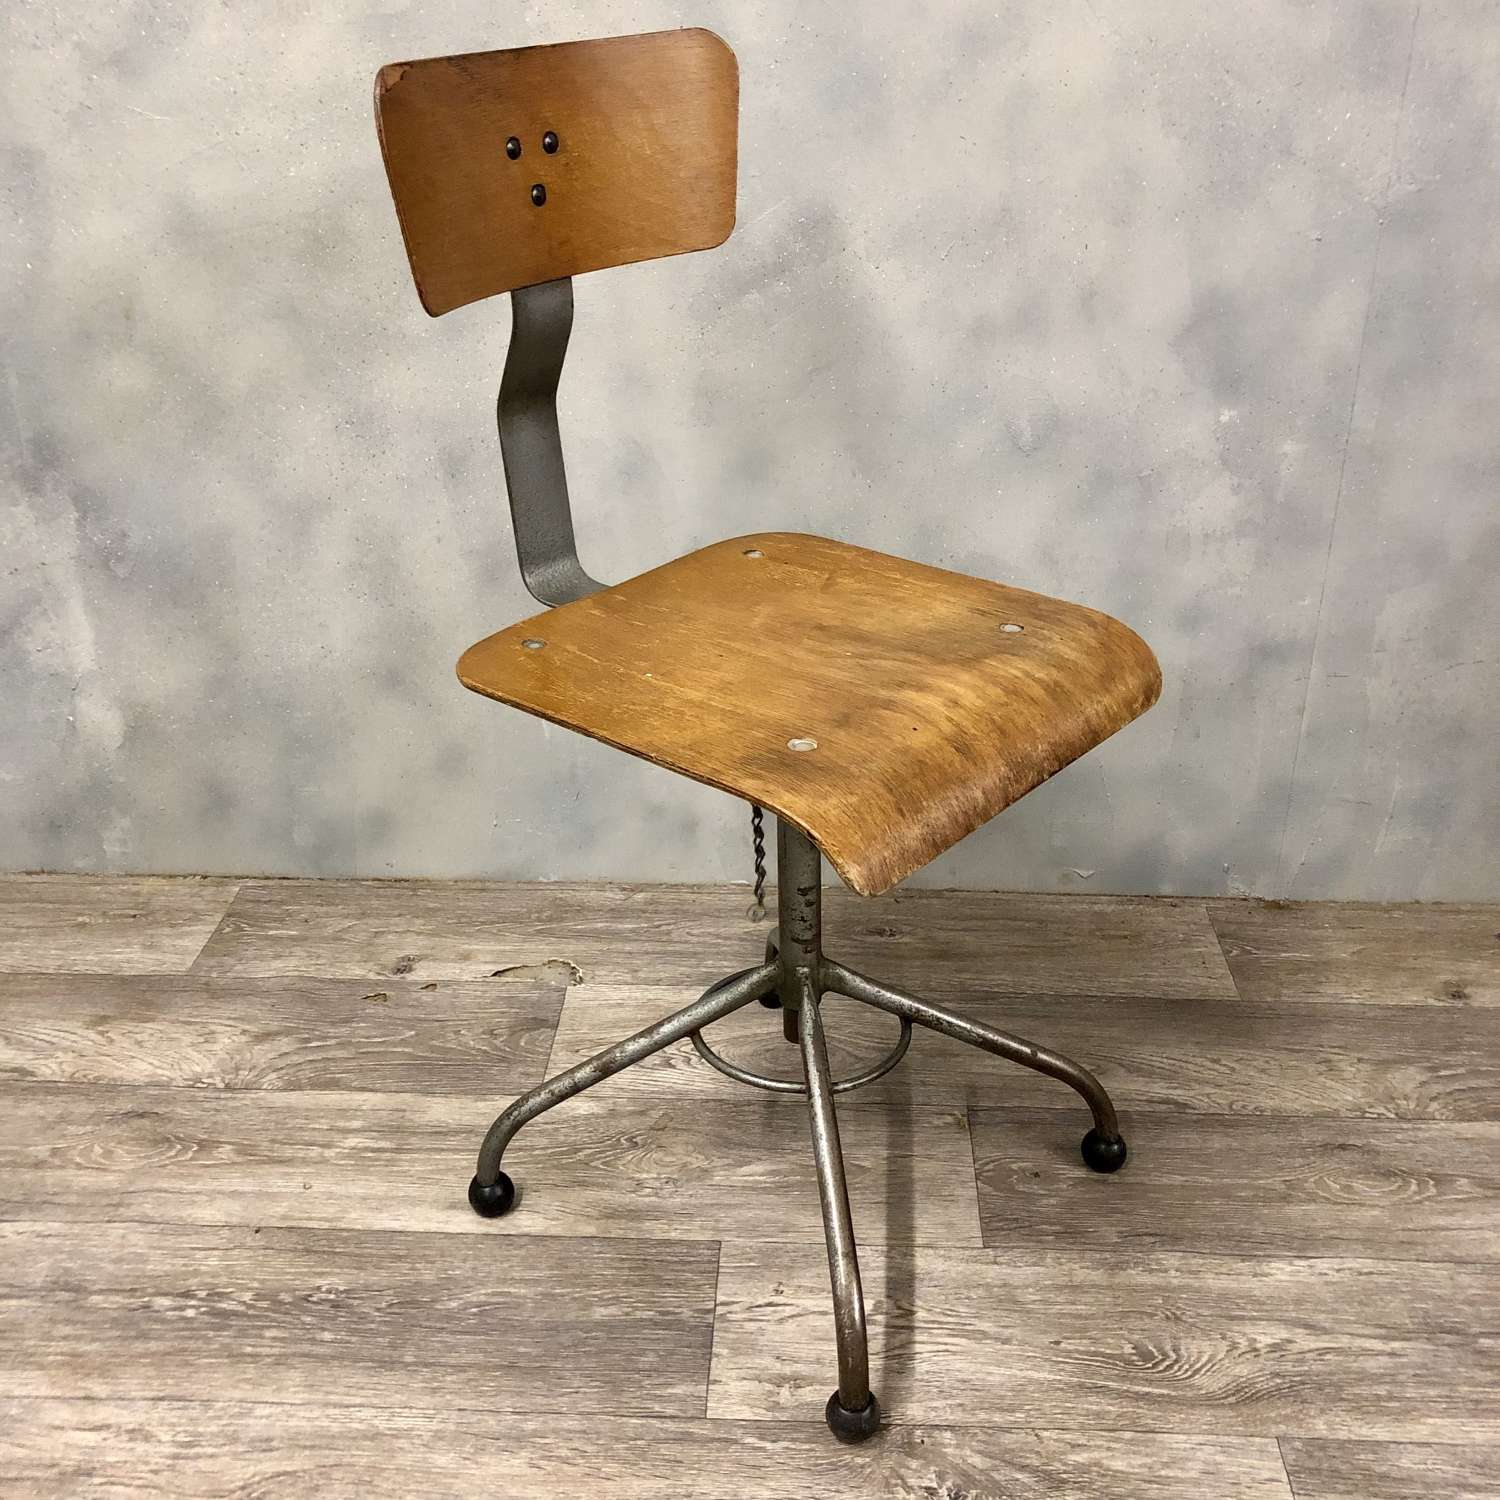 Vintage wood and metal industrial machinist factory chair